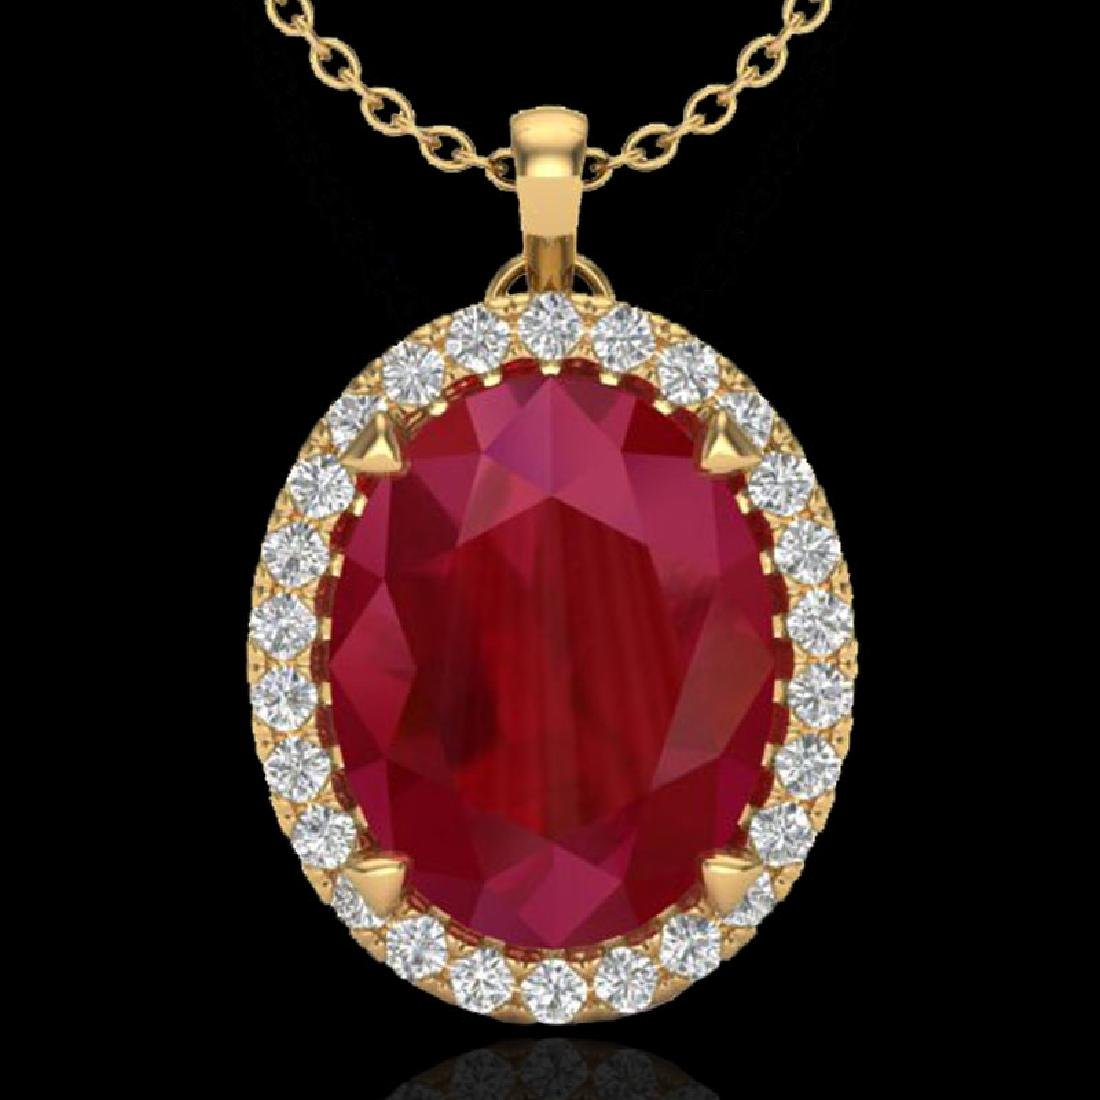 2.75 CTW Ruby & Micro VS/SI Diamond Halo Necklace 18K